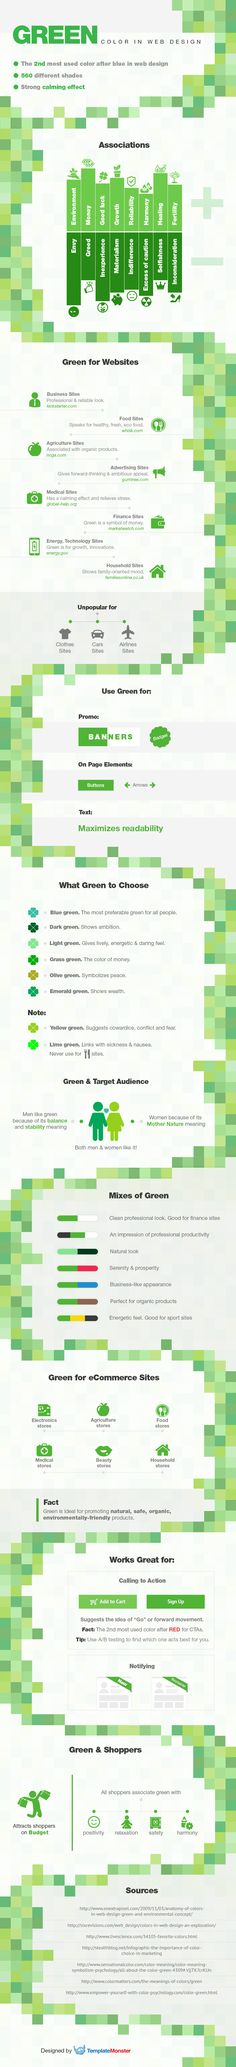 A visual guide on how to use green color in web design to attract visitors, turn them into customers, and thus increase conversion.